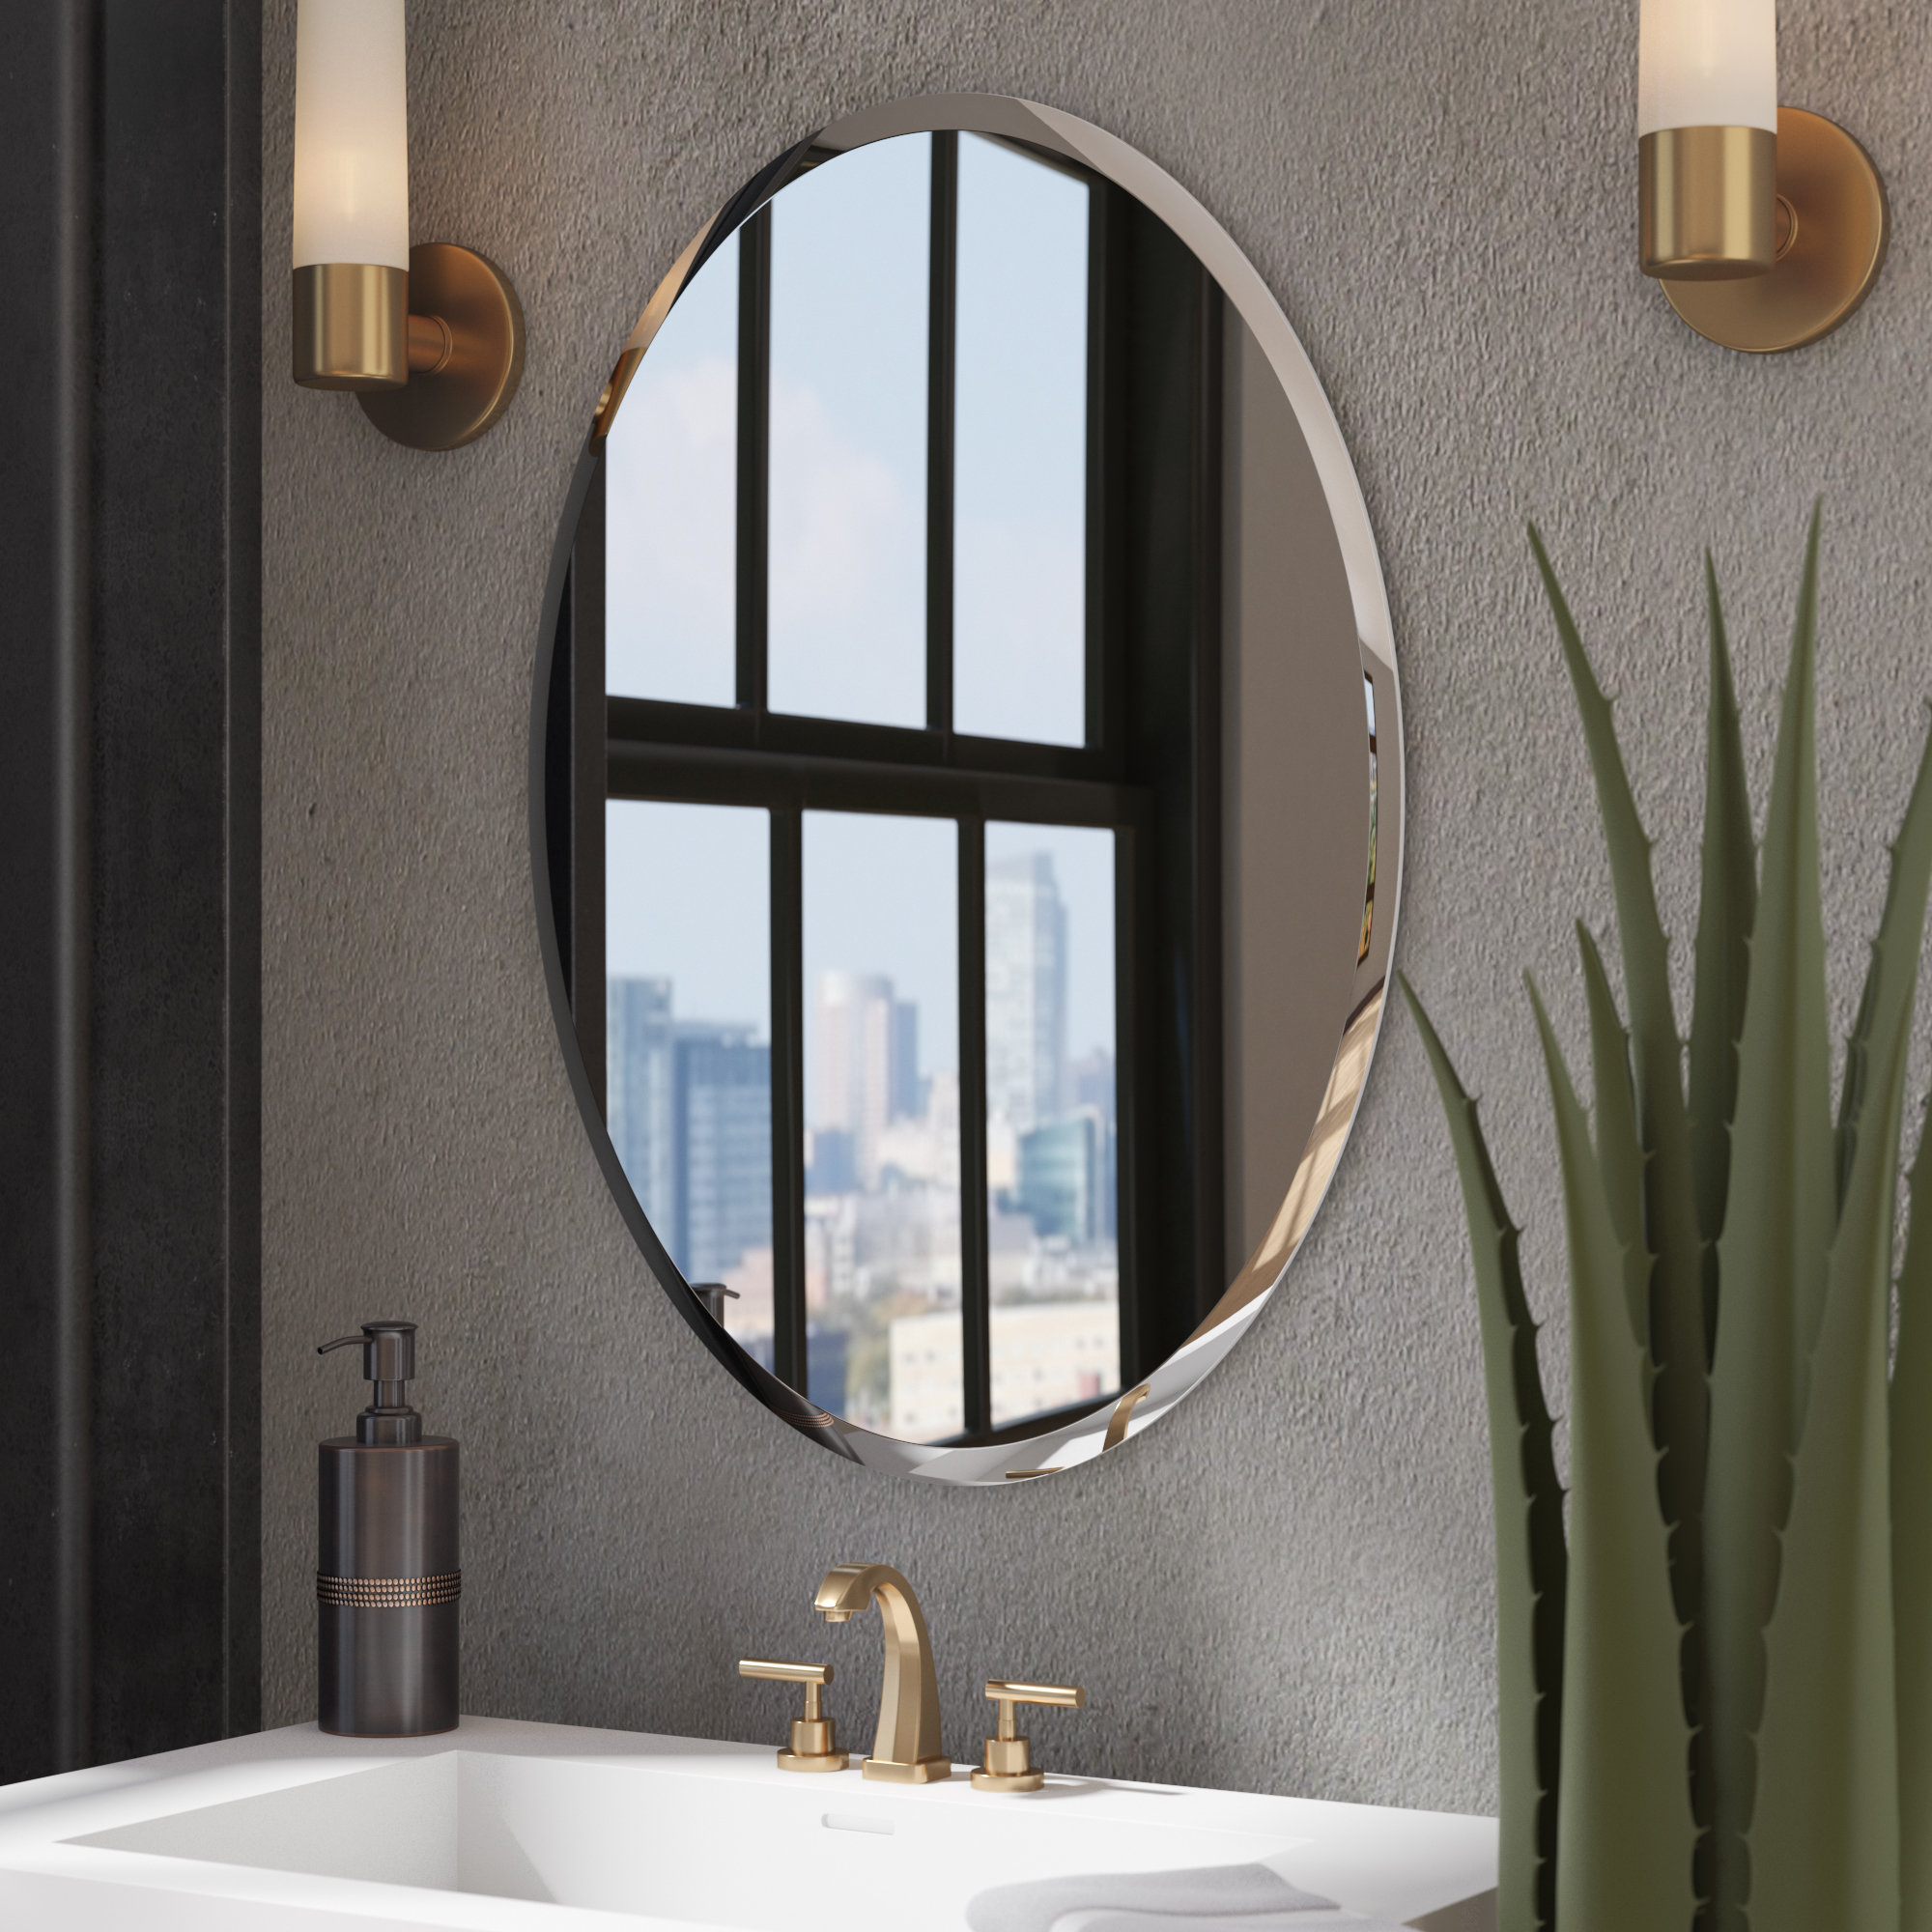 Modern & Contemporary Framed Bathroom Mirrors | Allmodern For Landover Rustic Distressed Bathroom/vanity Mirrors (View 20 of 30)